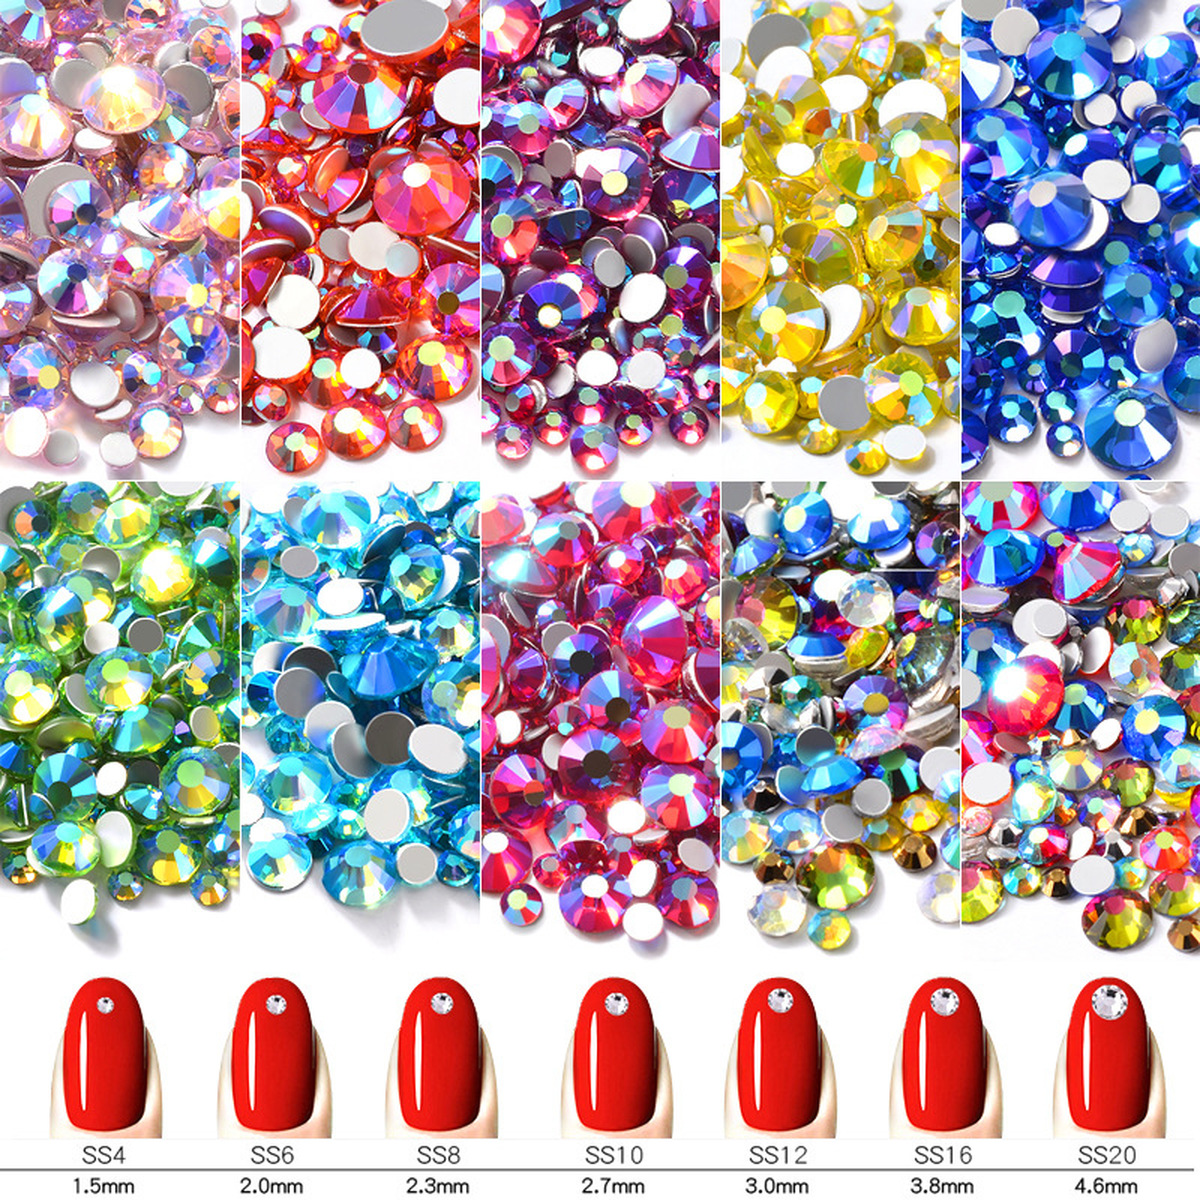 New Rhinestone Jewelry Nail Art Rhinestones Mixed Size AB Color Drills Gems Manicure Decoration Tool for Nails DIY 4000pcs 12 color nail art rhinestones sticker diy 3d nails metal manicure decoration beads jewelry studs wheels free shipping